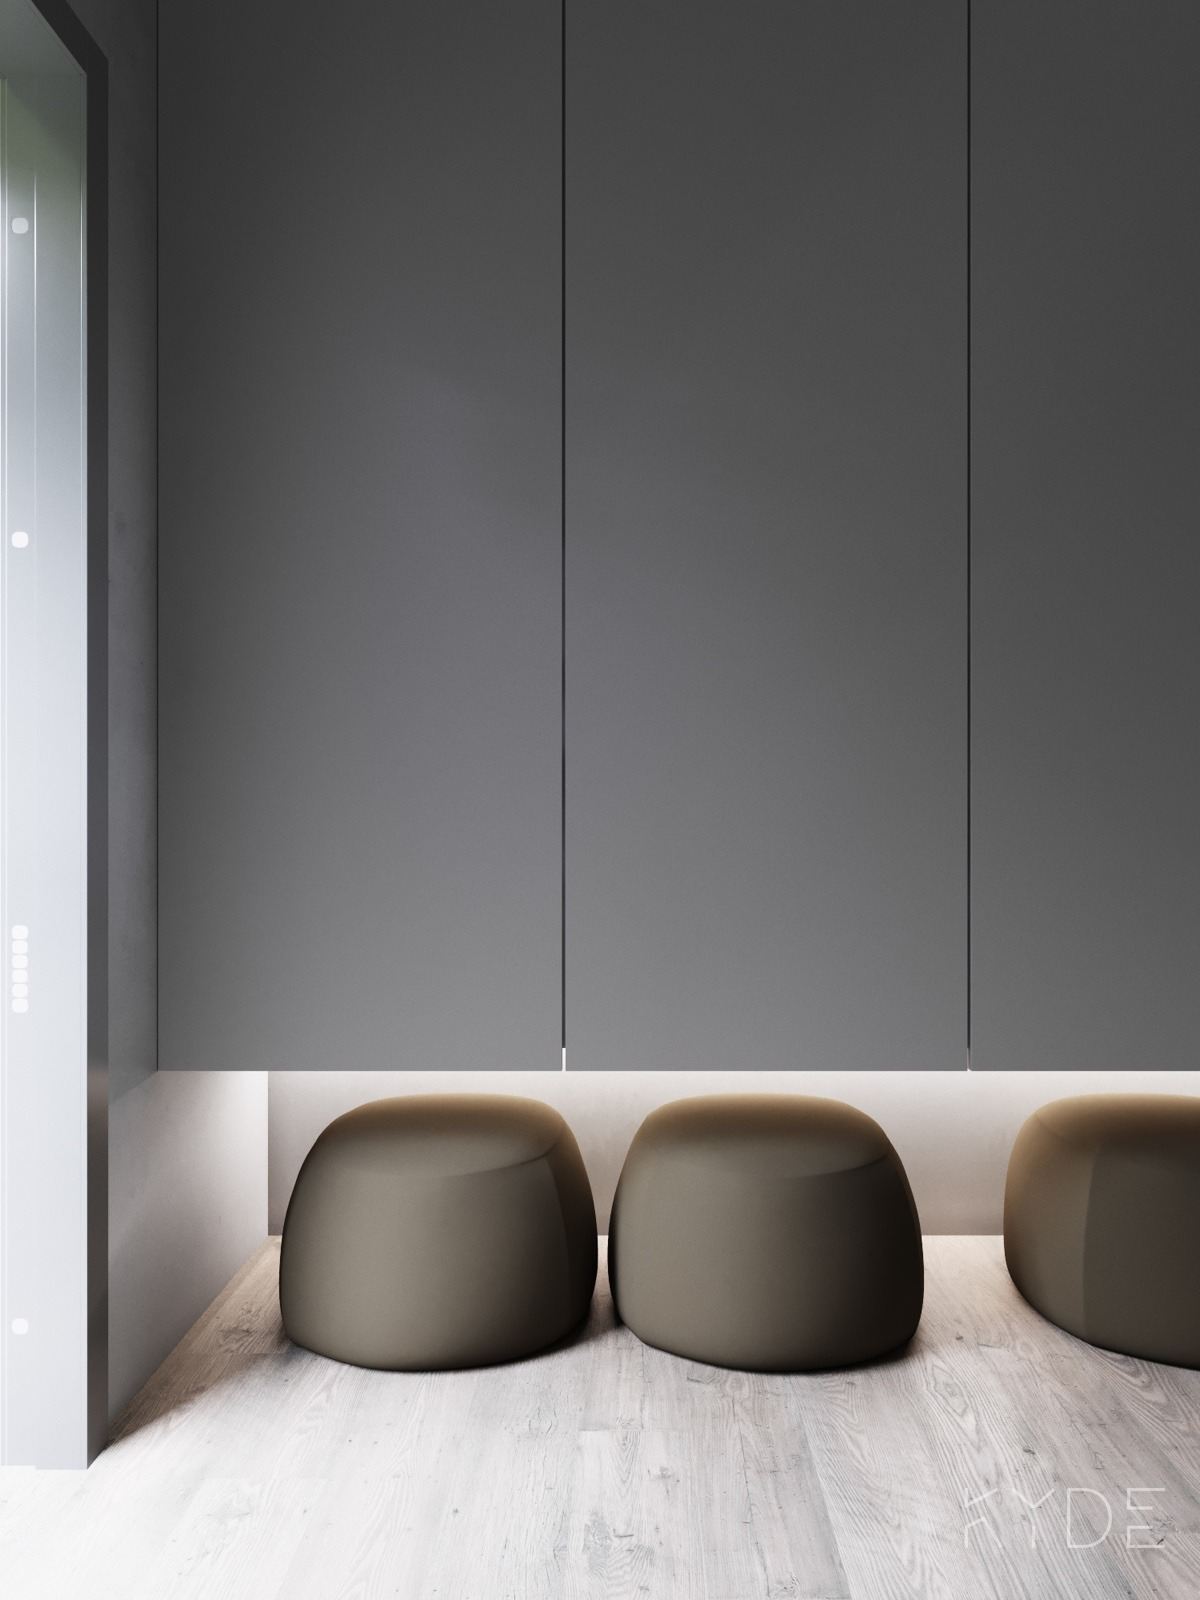 Floor Cushions Under Grey Cupboard - A summer ready home perfect for your dream vacation